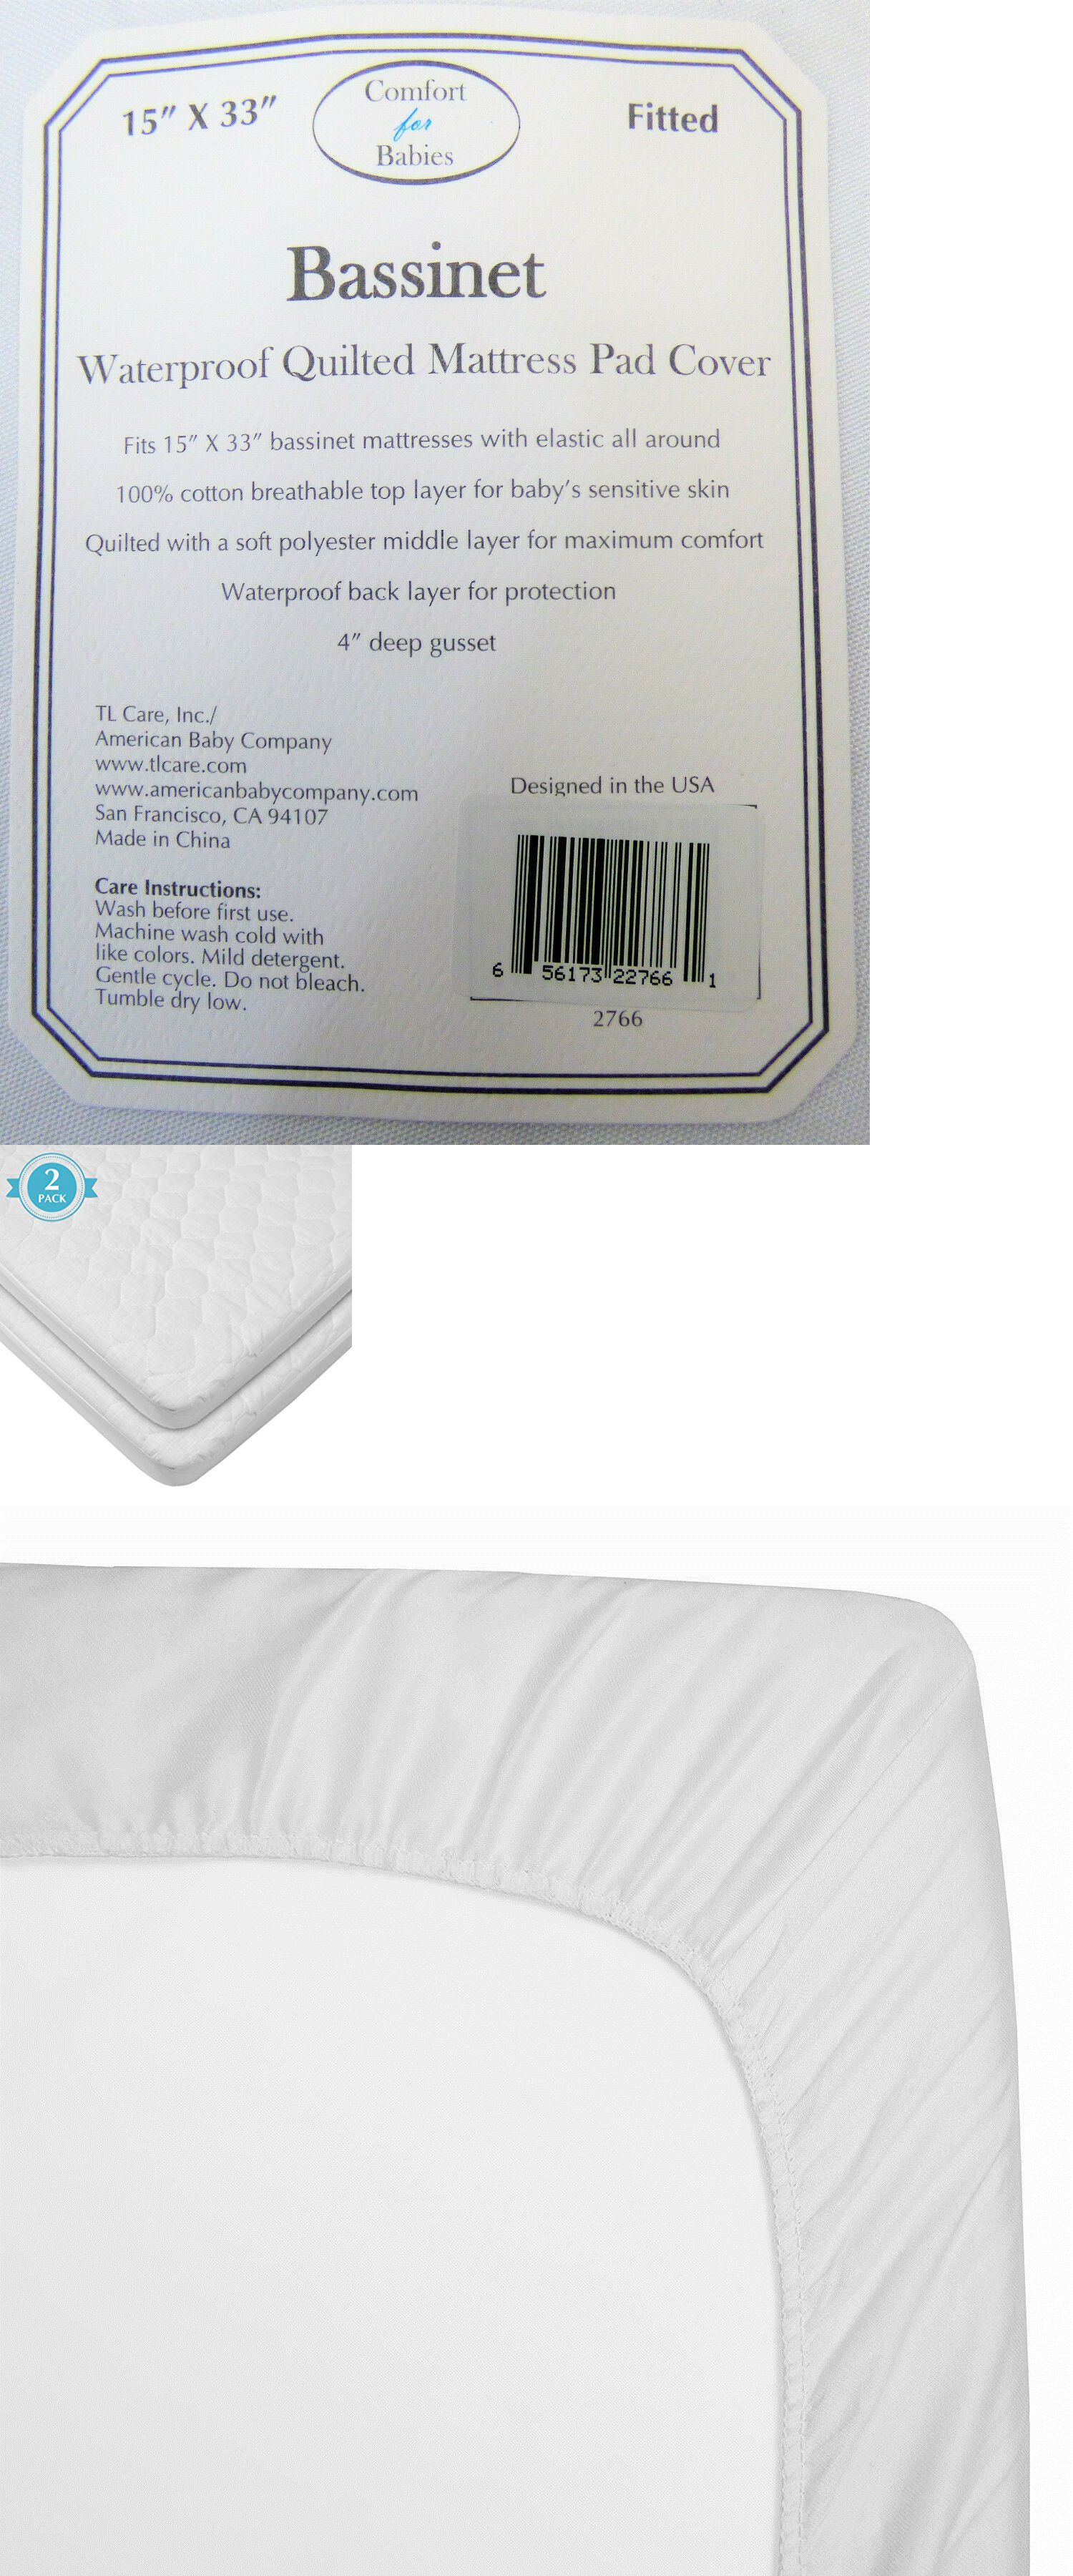 Bassinet Matress Protector Mattress Pads And Covers 162041 American Baby Company Waterproof